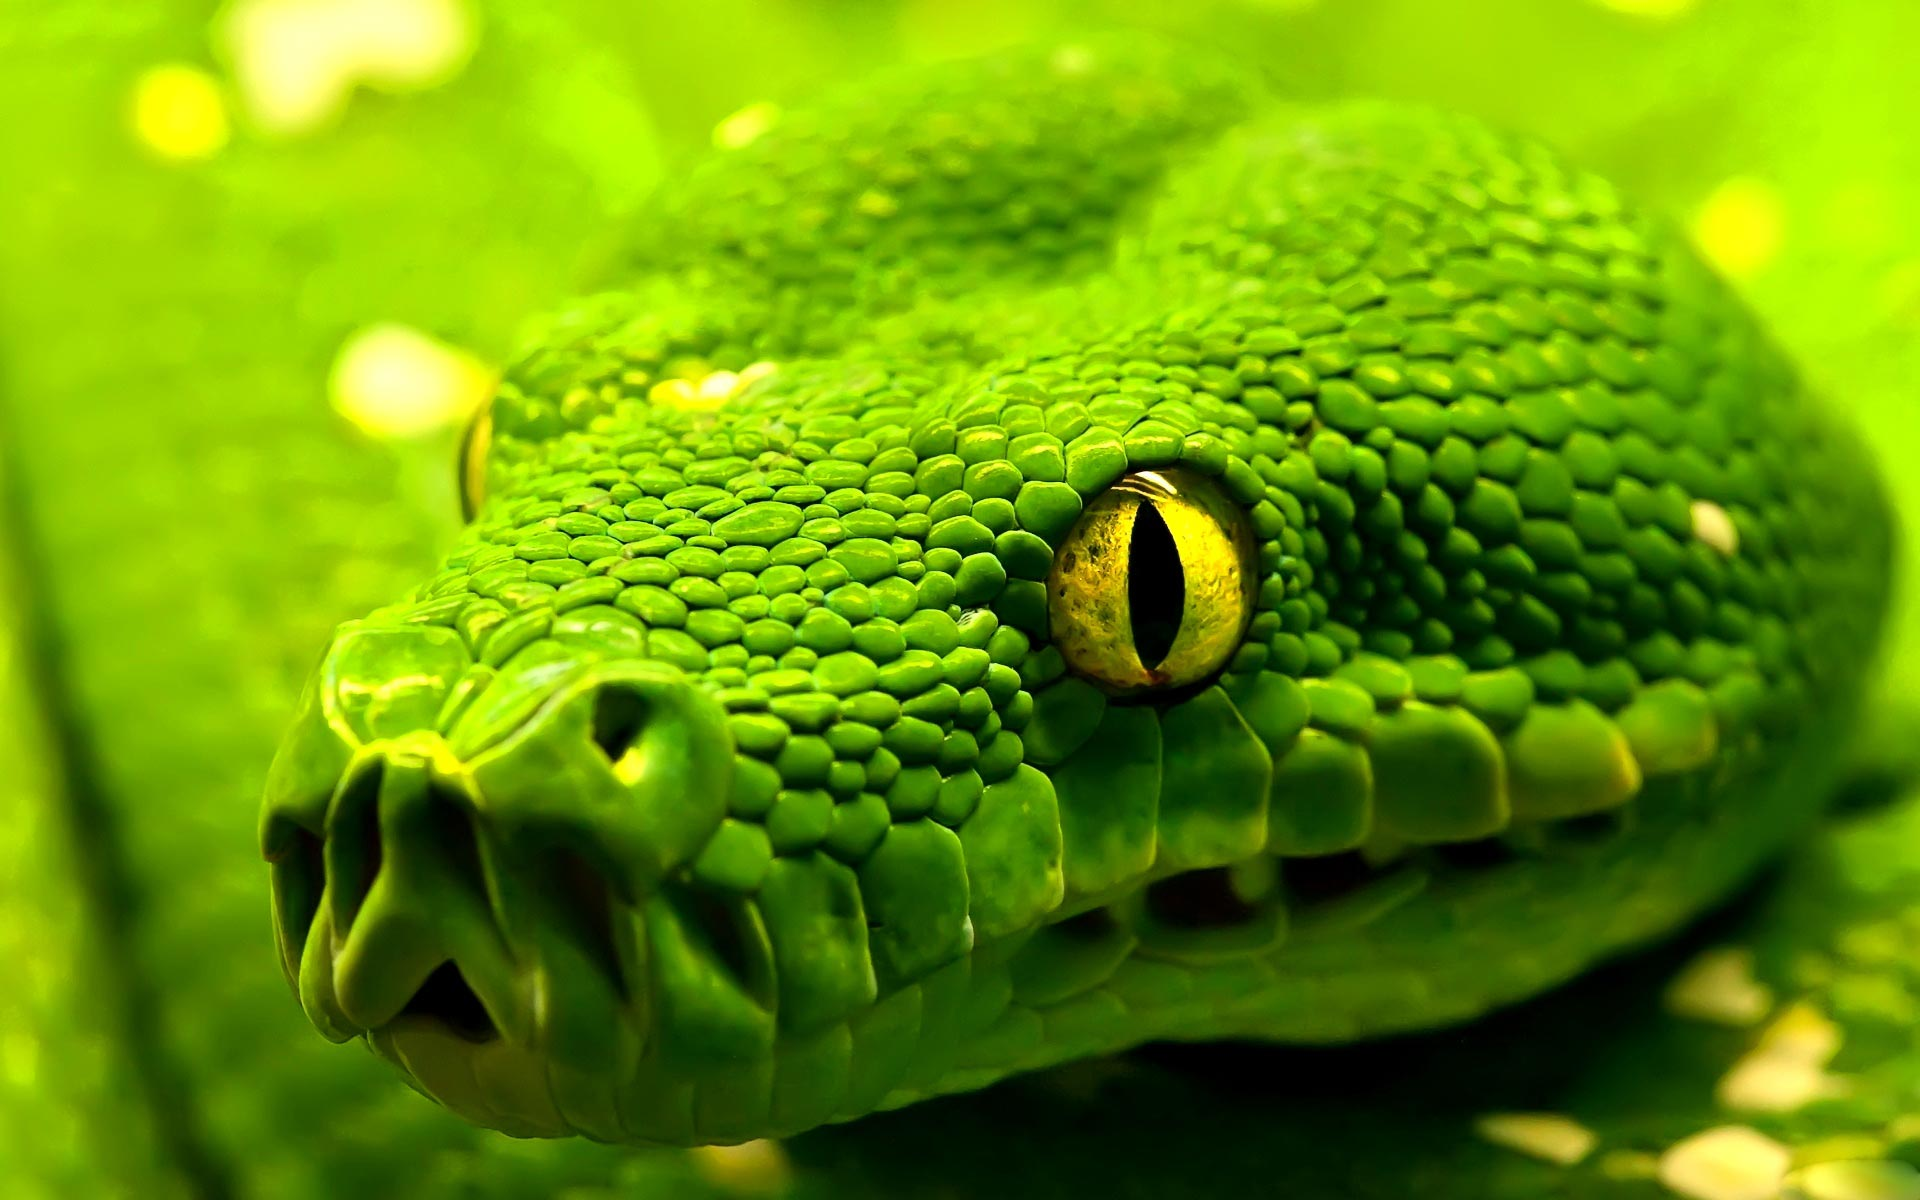 Green Snakes Wallpapers & Pictures